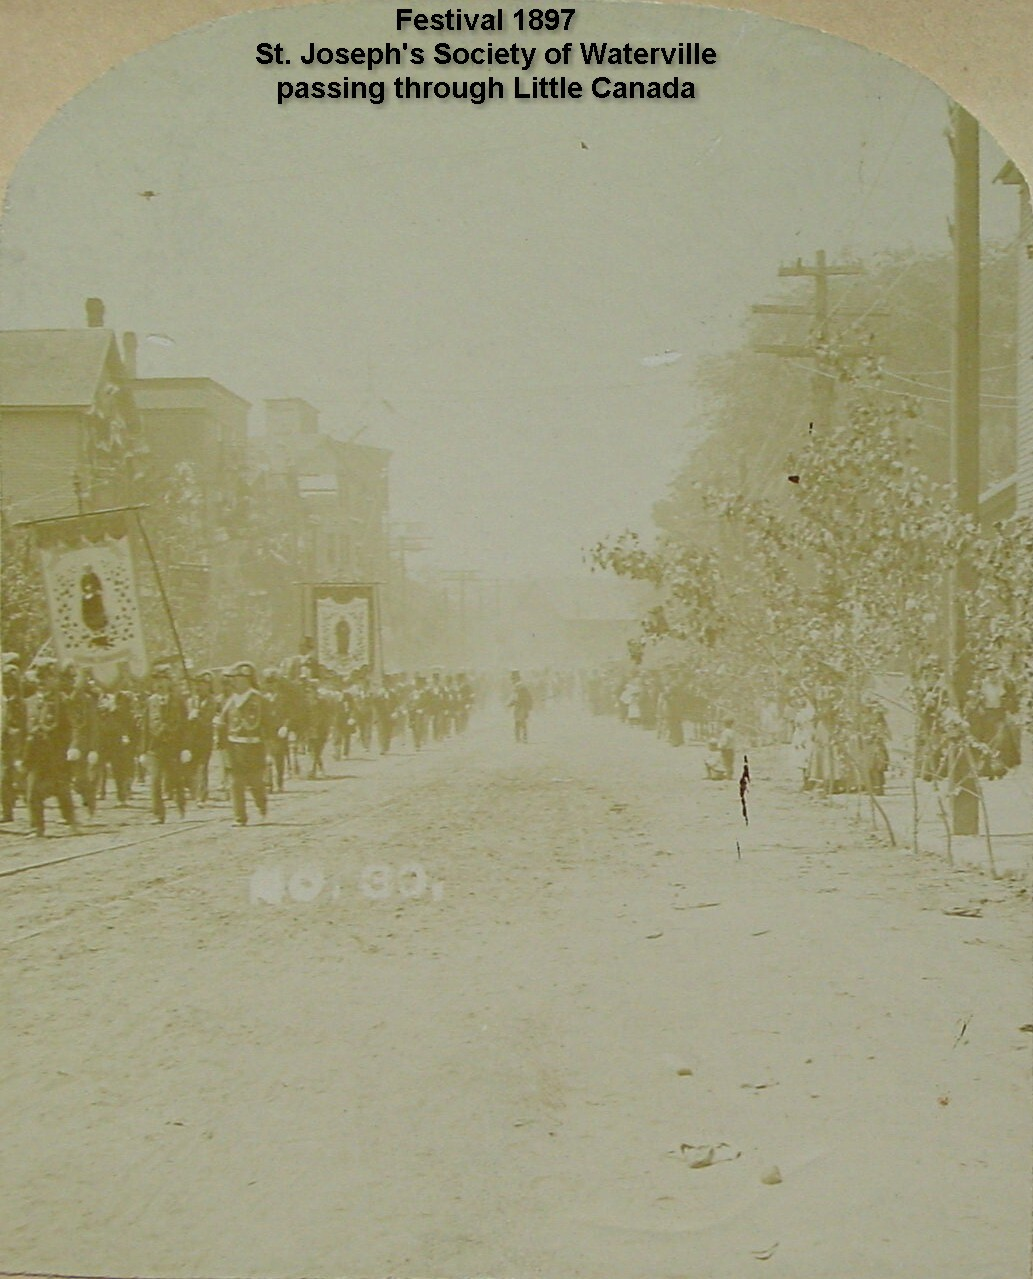 Festival 1897 -  St. Joseph's Society of Waterville passing through Little Canada